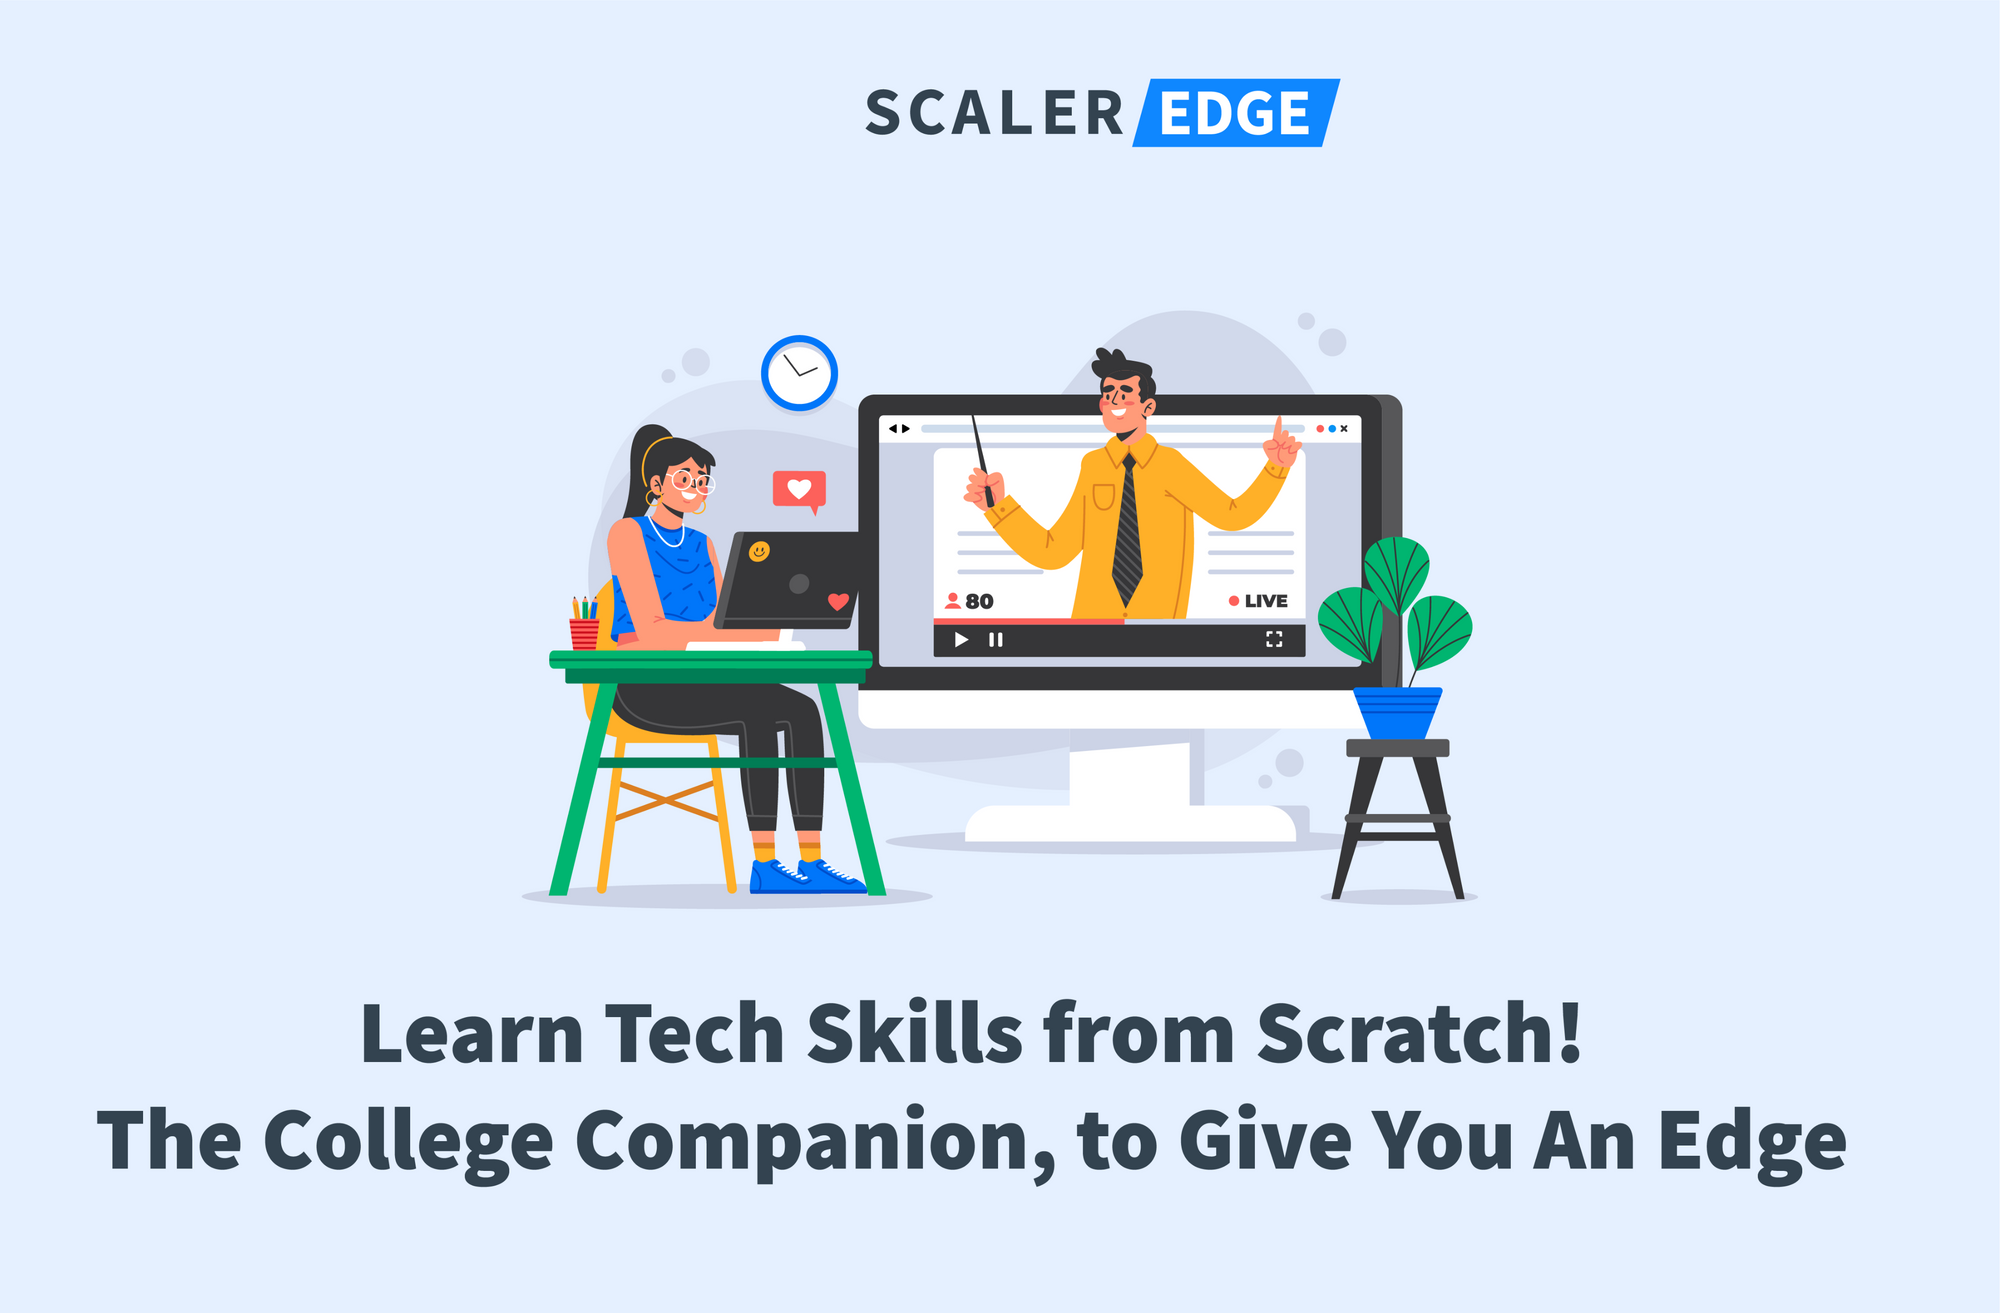 InterviewBit launches Scaler Edge, a first of its kind college-companion program to boost the employability of engineering graduates